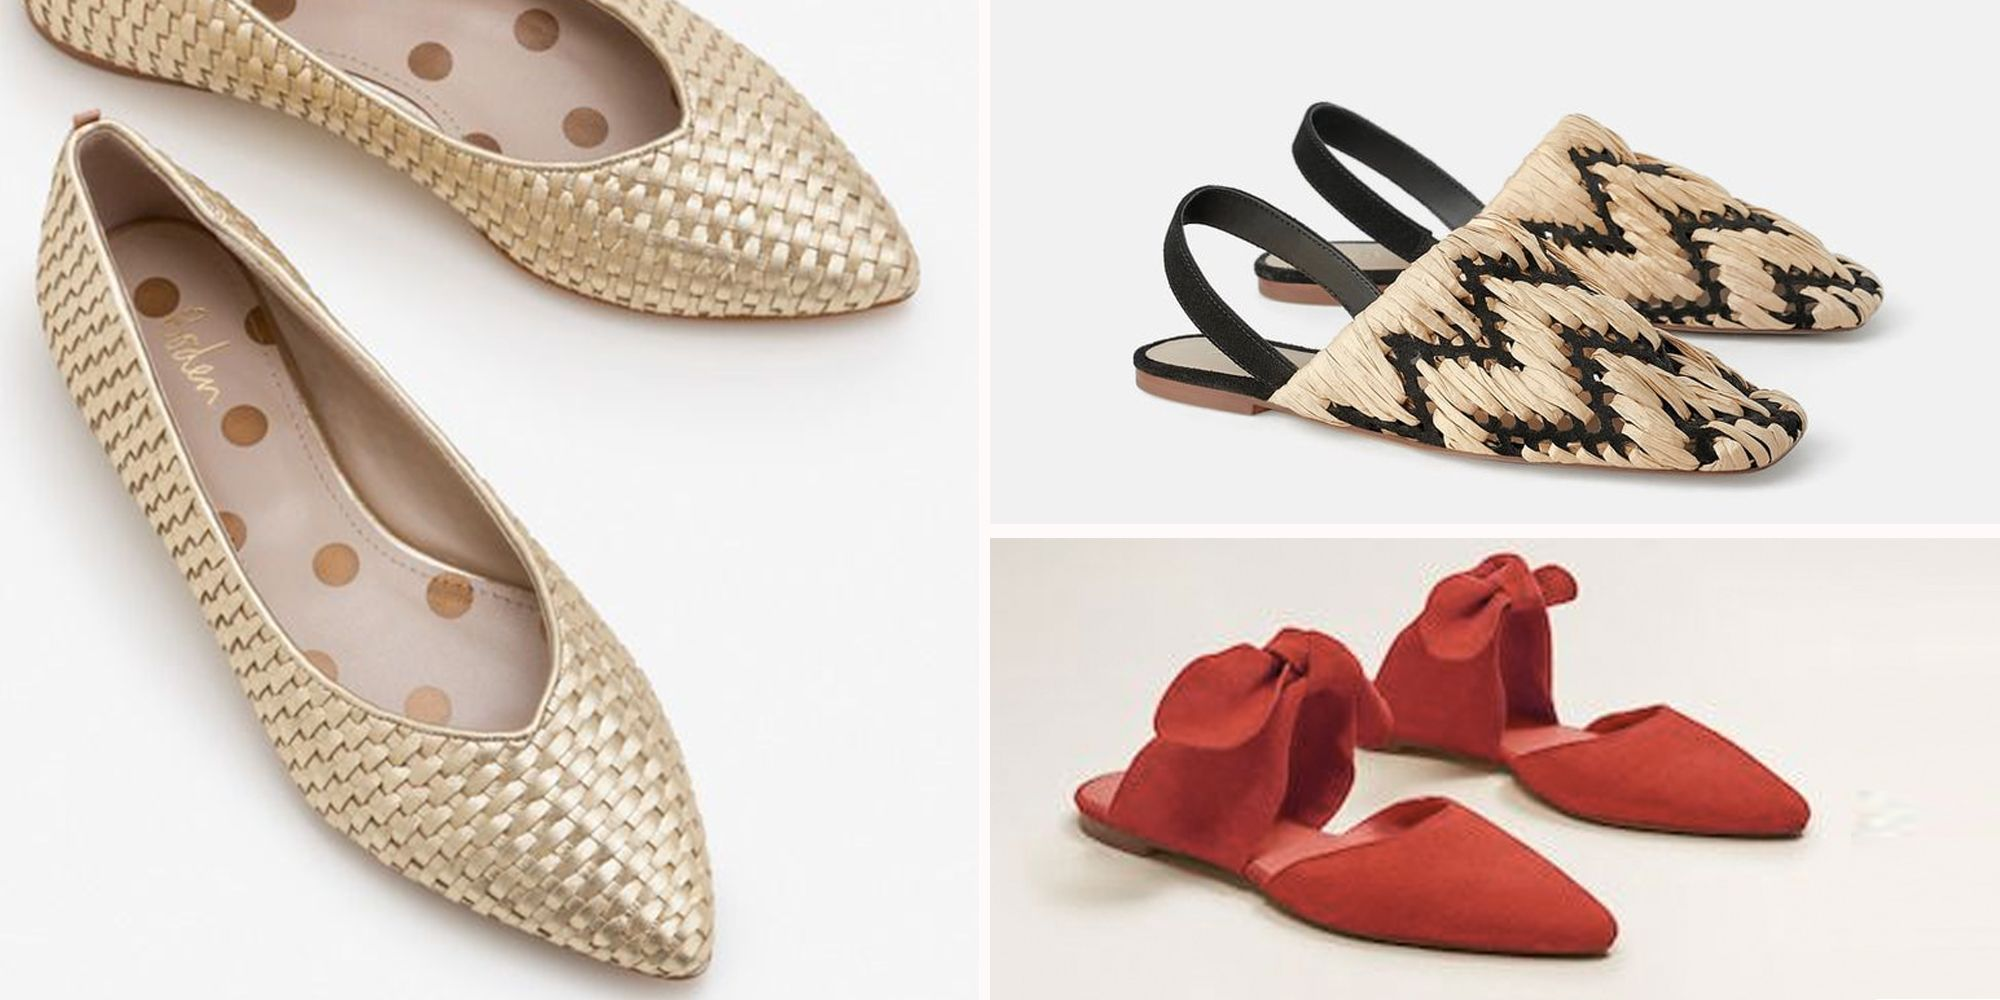 Flat shoes for women - Best flat shoes